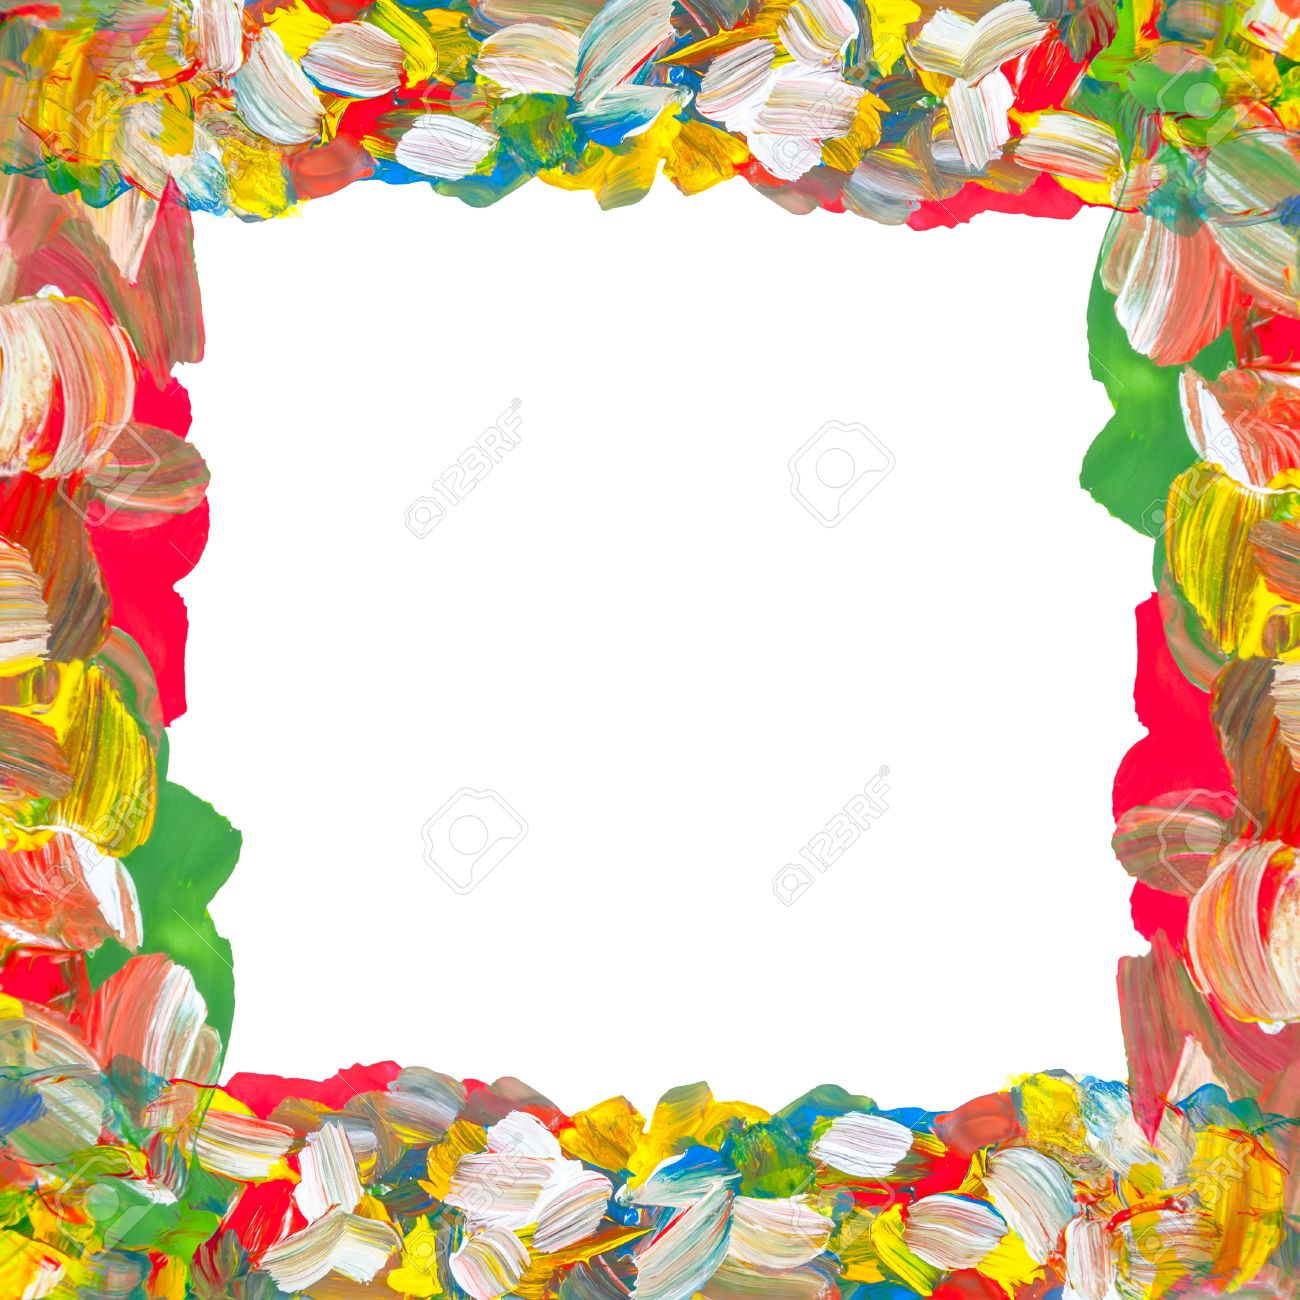 Abstract color paints frame on white background with place for your text Stock Photo - 16208692